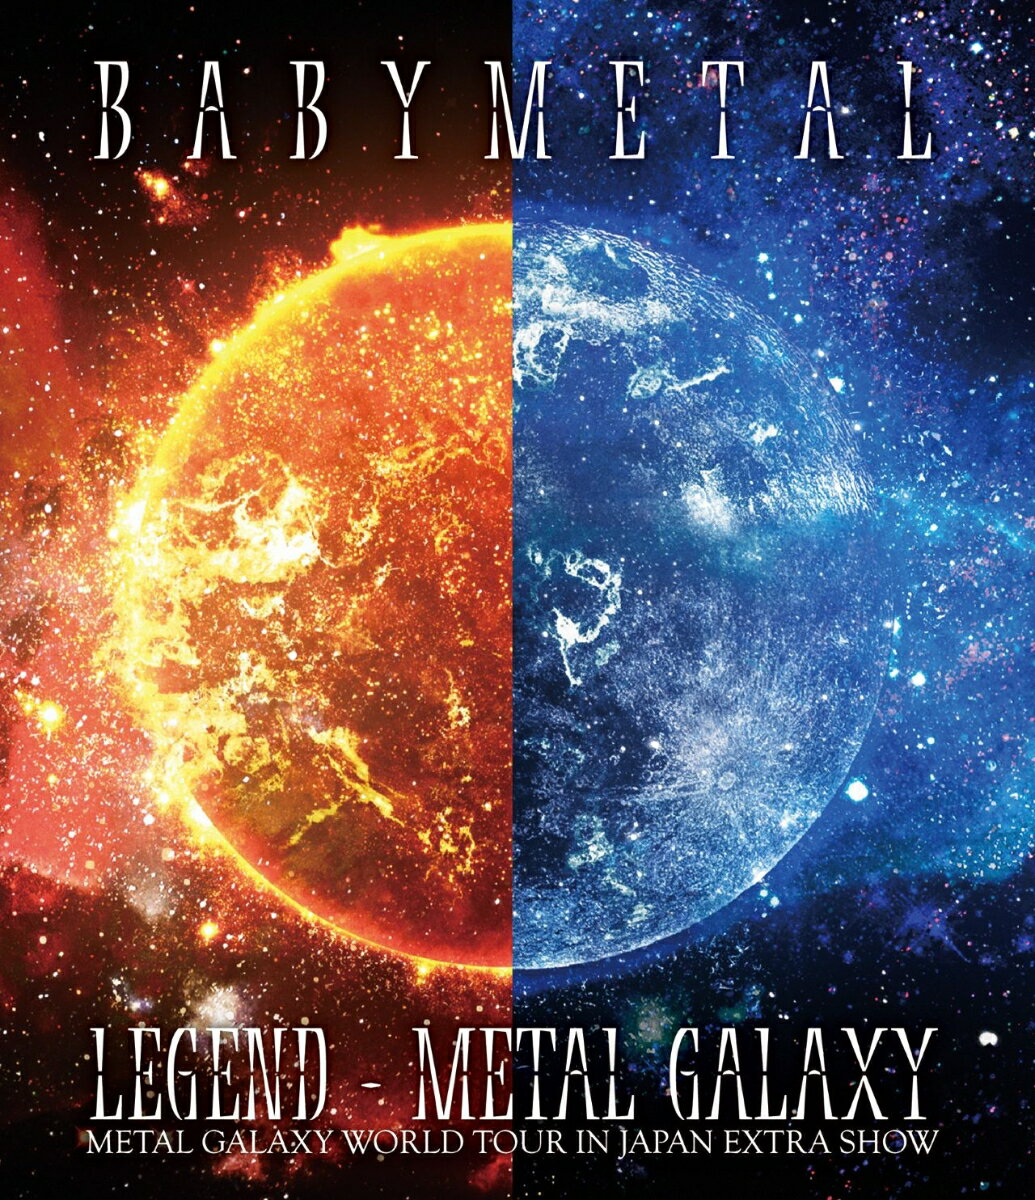 LEGEND - METAL GALAXY (METAL GALAXY WORLD TOUR IN JAPAN EXTRA SHOW)【Blu-ray】